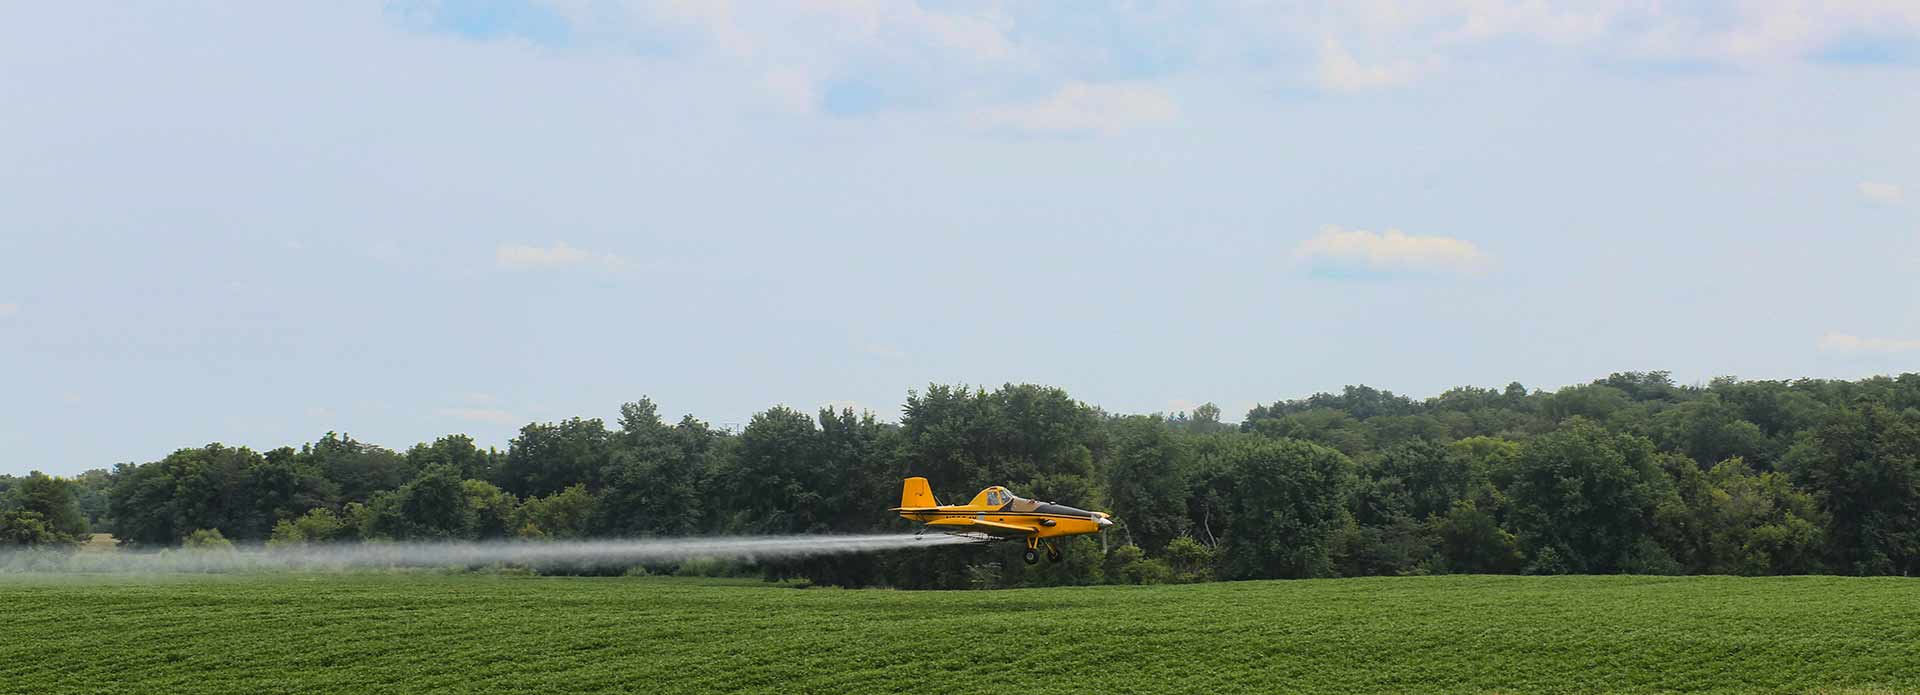 Eldon-C-Stutsman-Inc-Agronomy-Aerial-Application